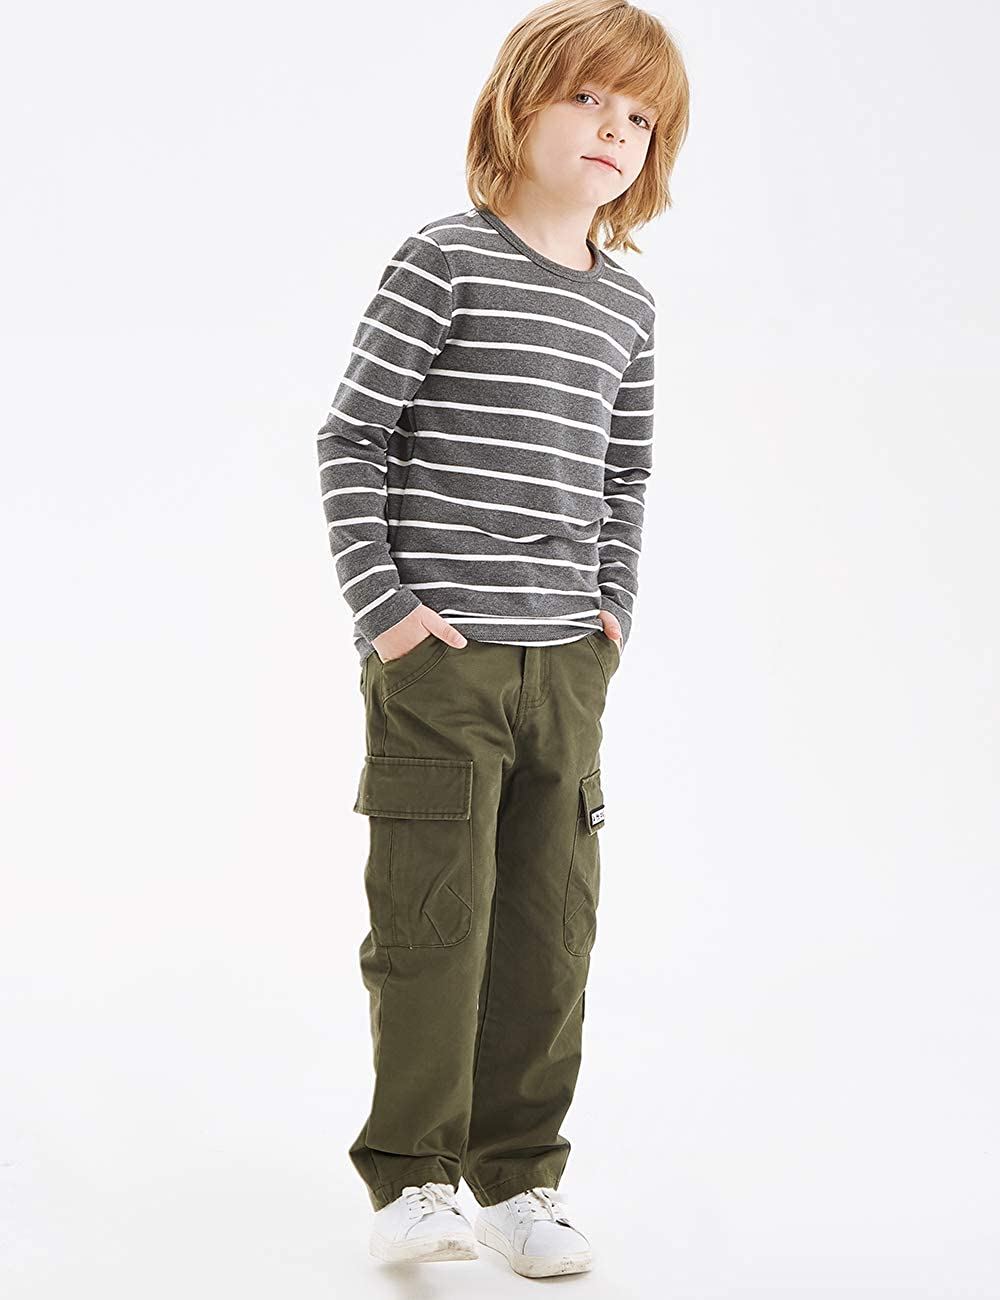 BYCR Boys 100/% Cotton Multi Pocket Chino Cargo Pants for Kids Size 5-18